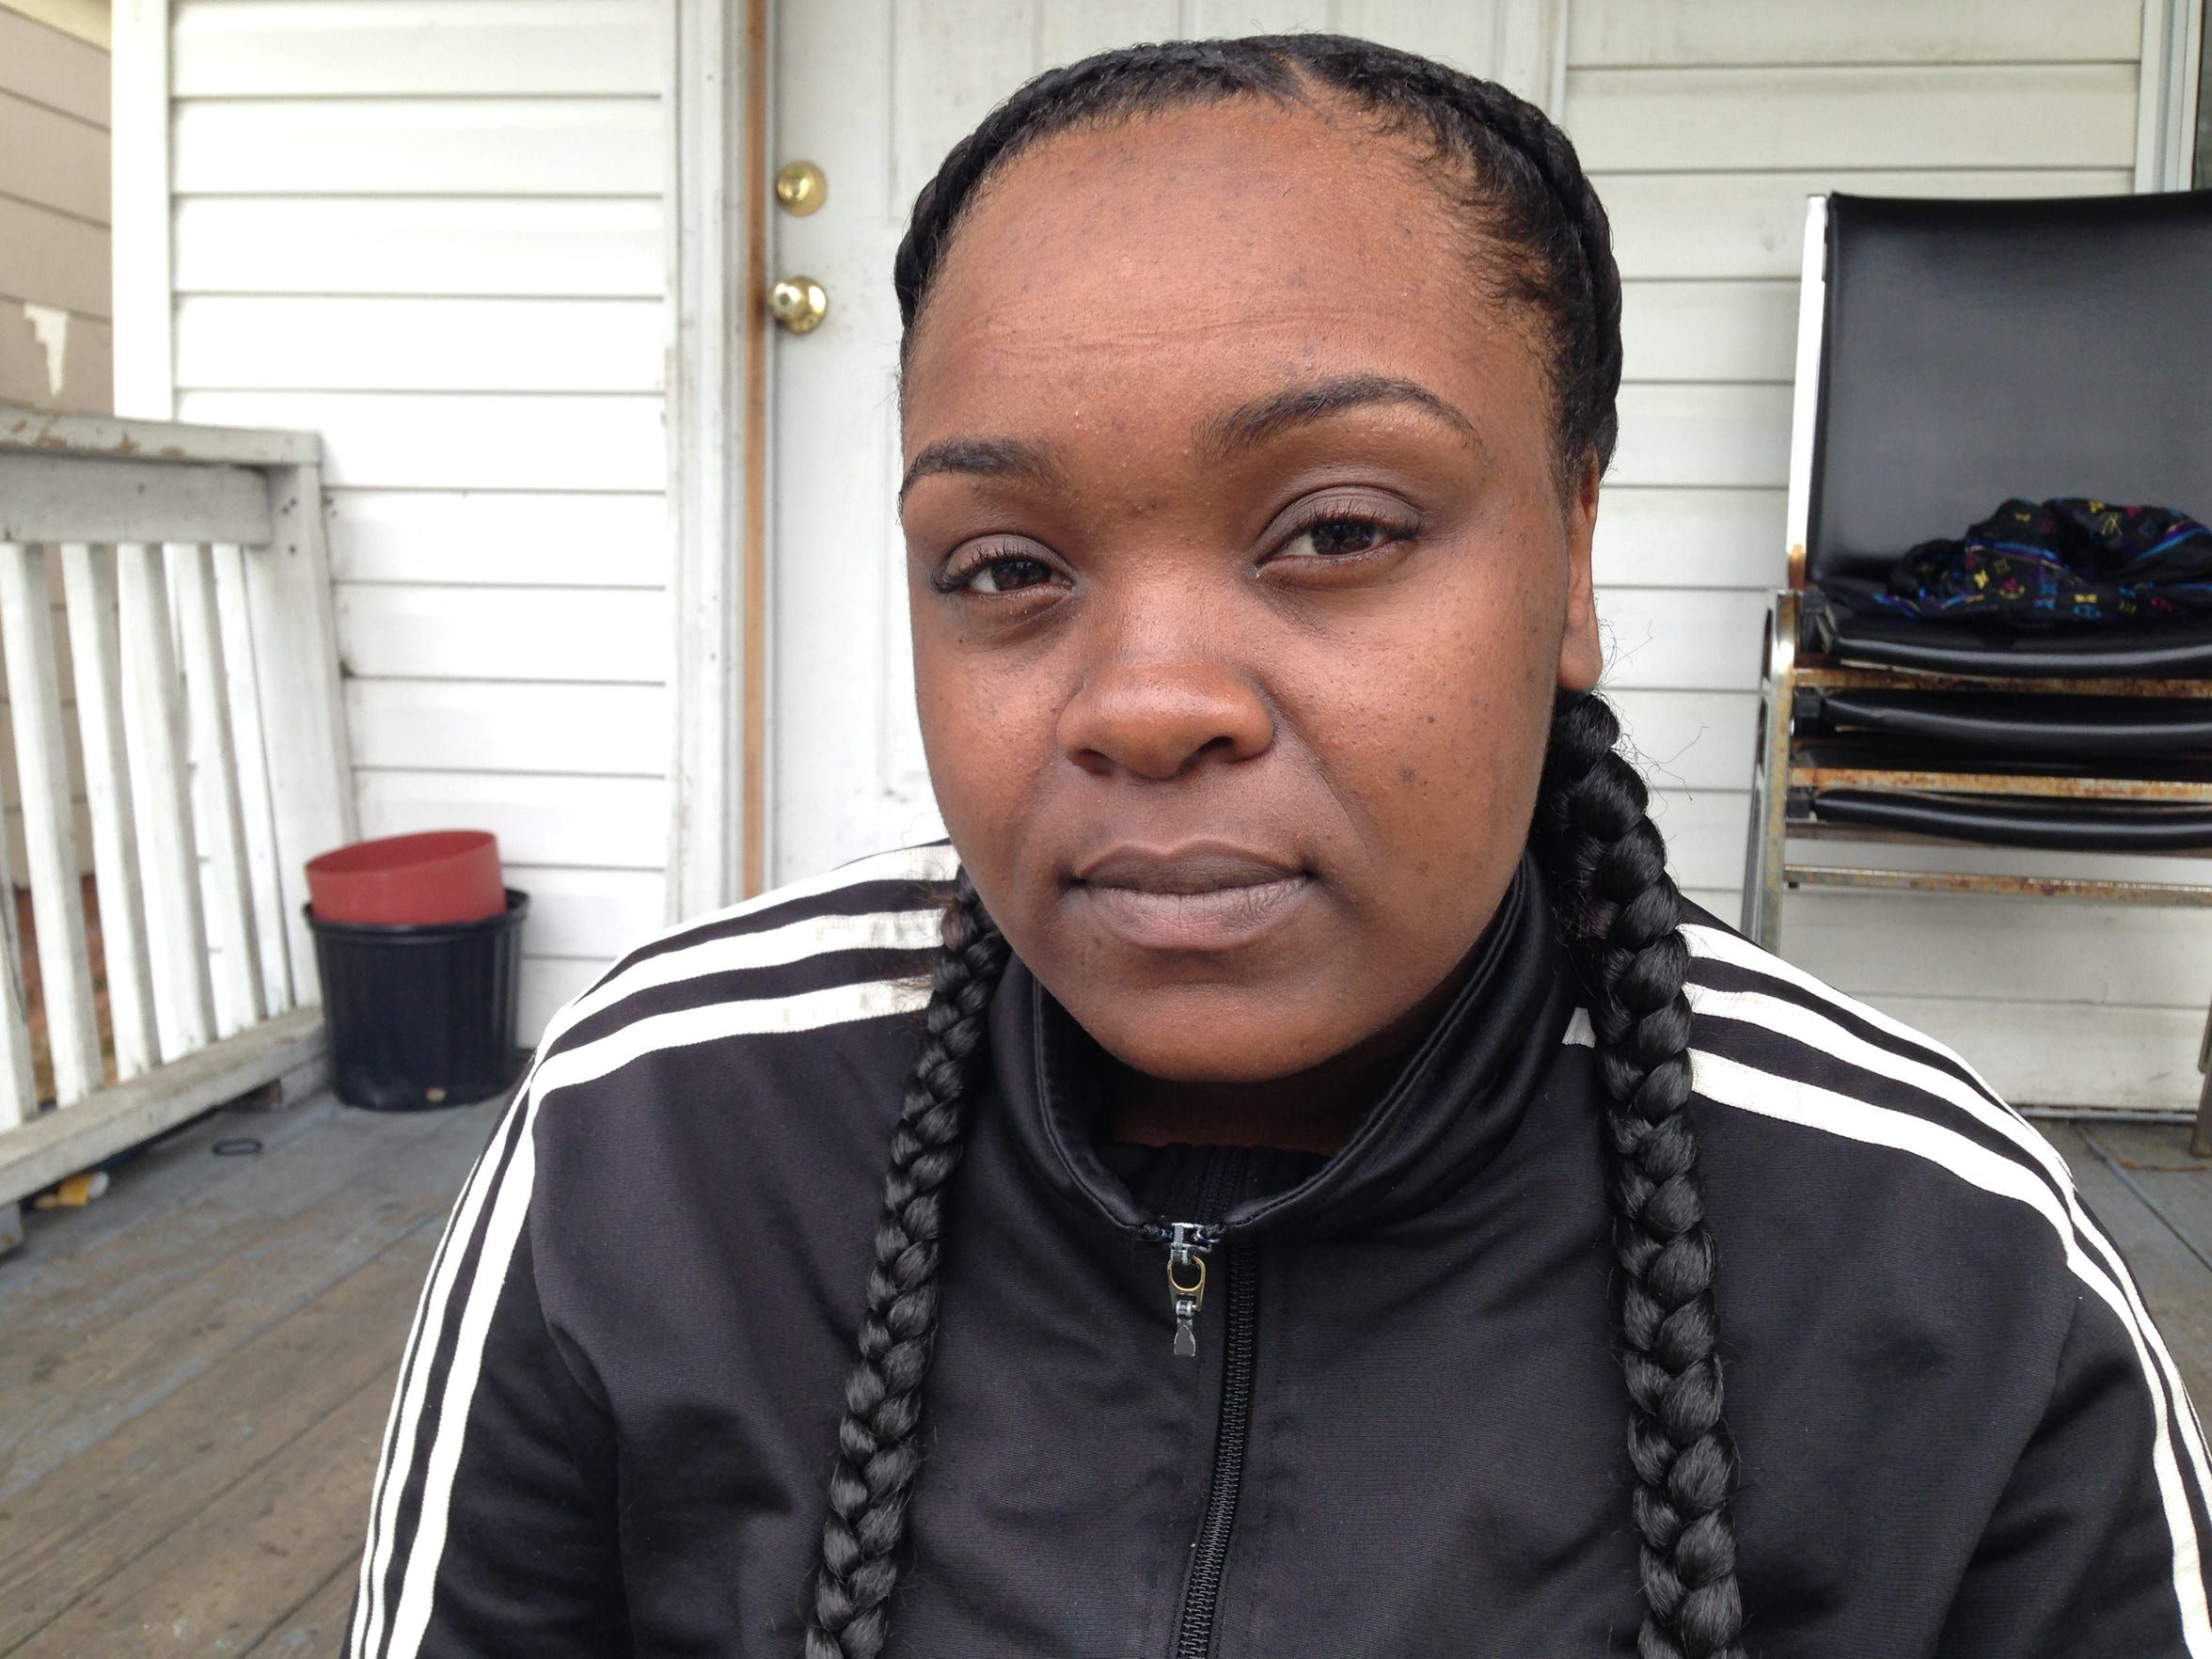 Shenise Bellamy couldn't bear to sit on her front porch after witnessing the killing of Tamara Wilson-Seidle outside her Sewell Avenue home in Asbury Park on June 16, 2015.